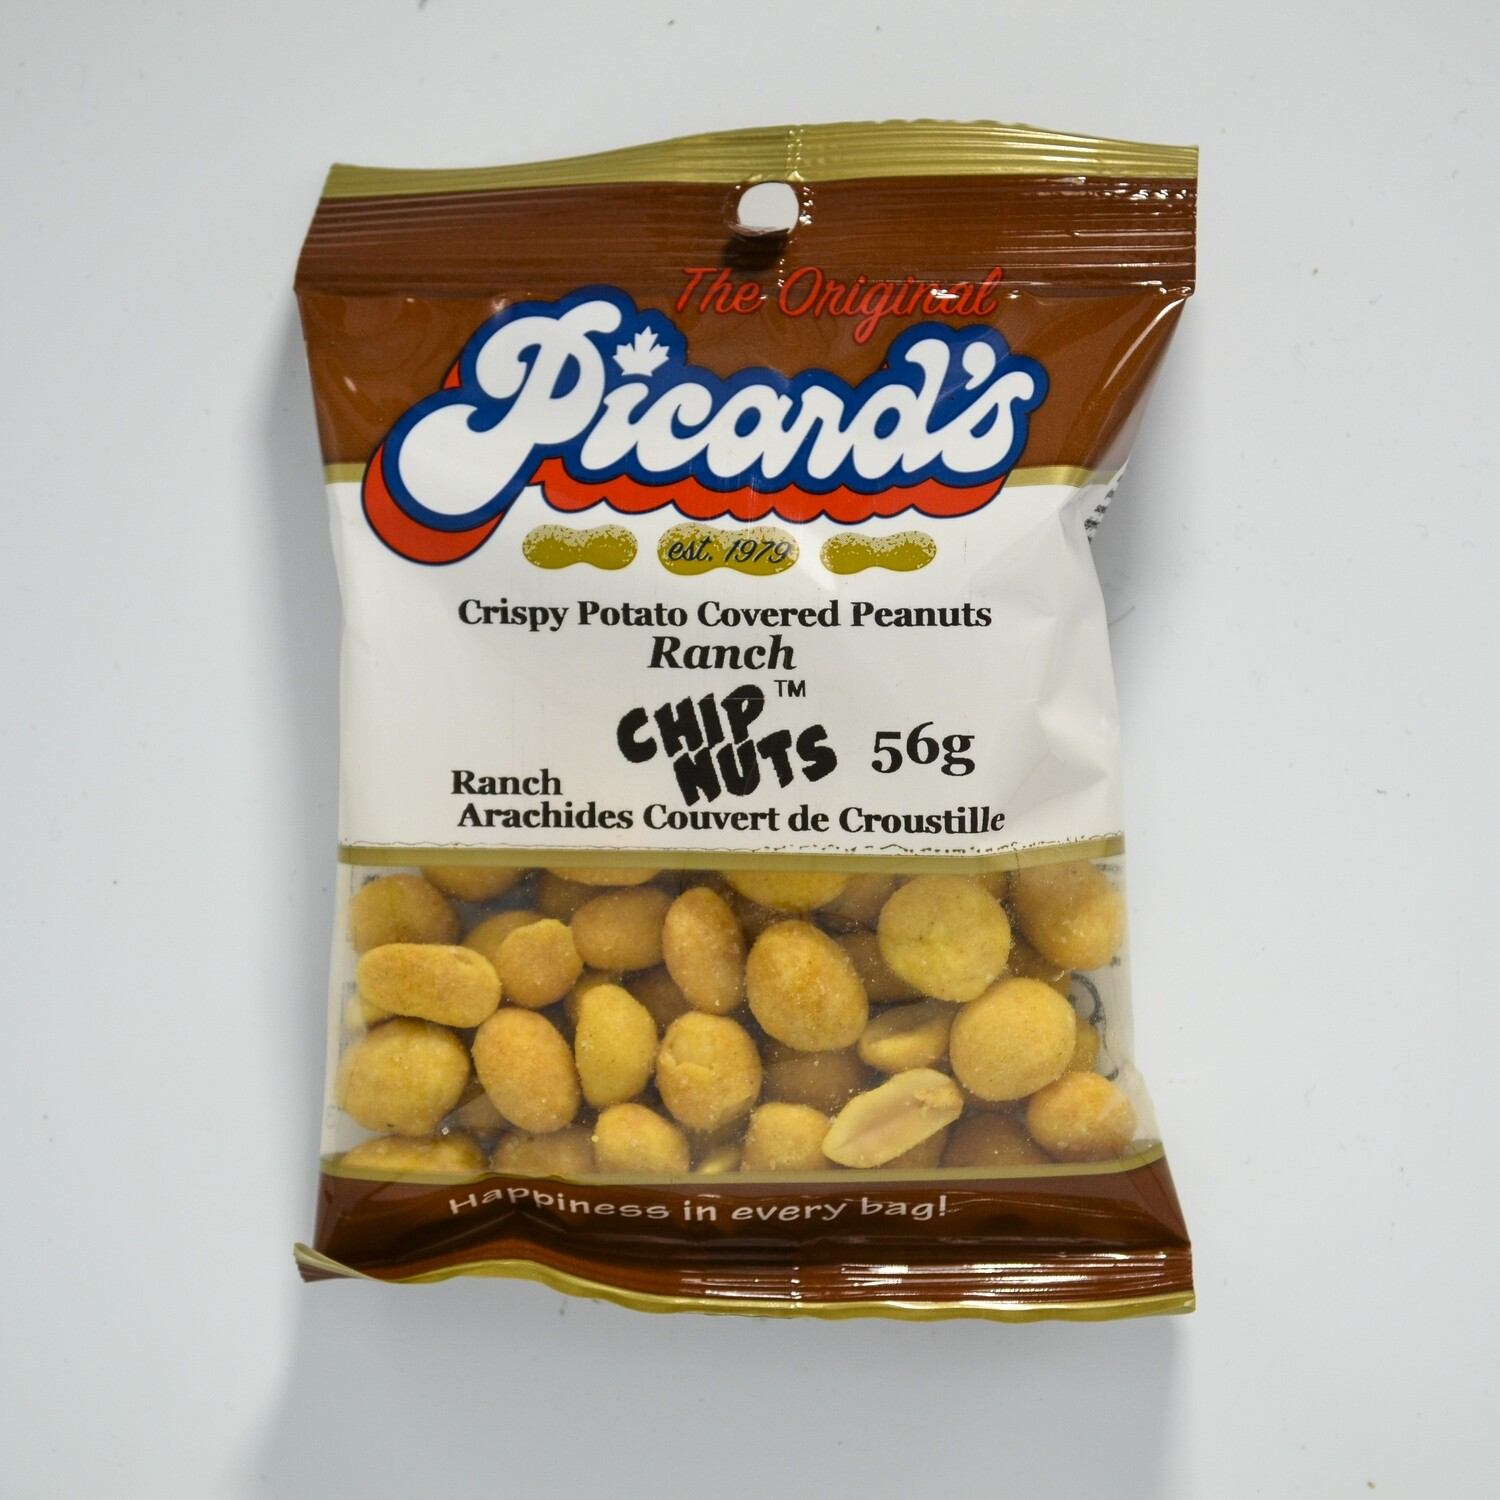 Picard's - Ranch Chipnuts 56g